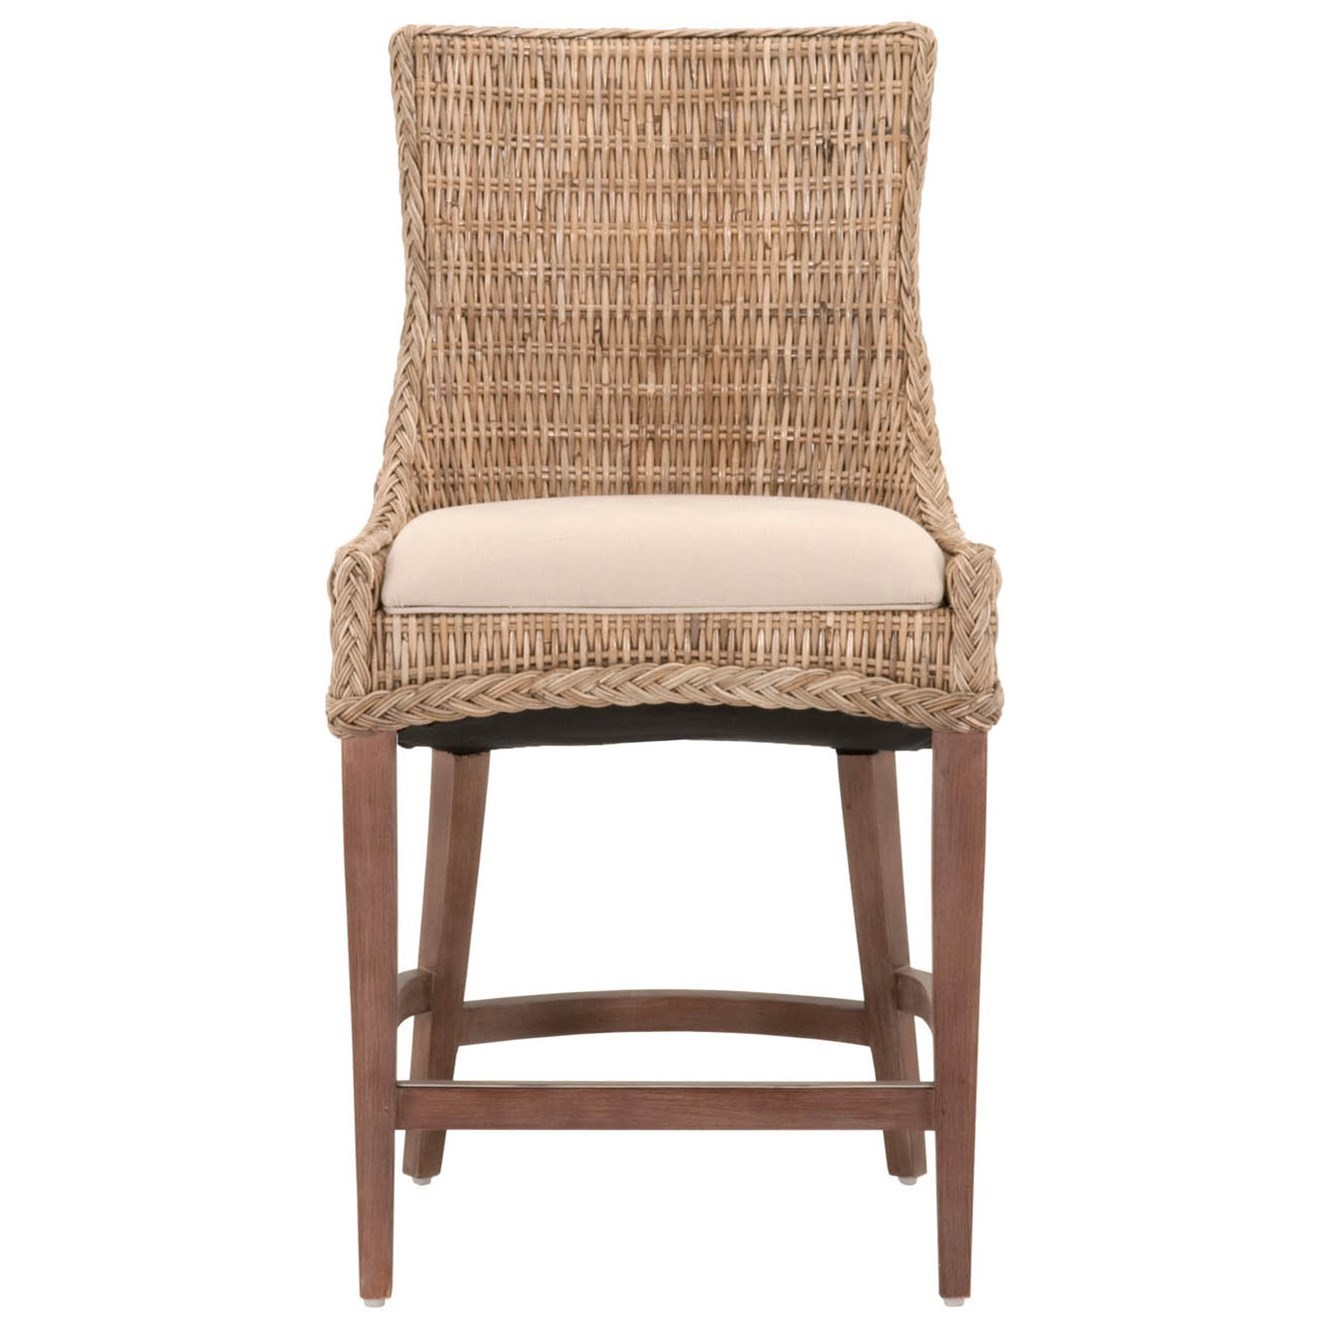 Orient Express Furniture Wicker Greco Counter Stool - Item Number: 6814CS-GKU-LGRY